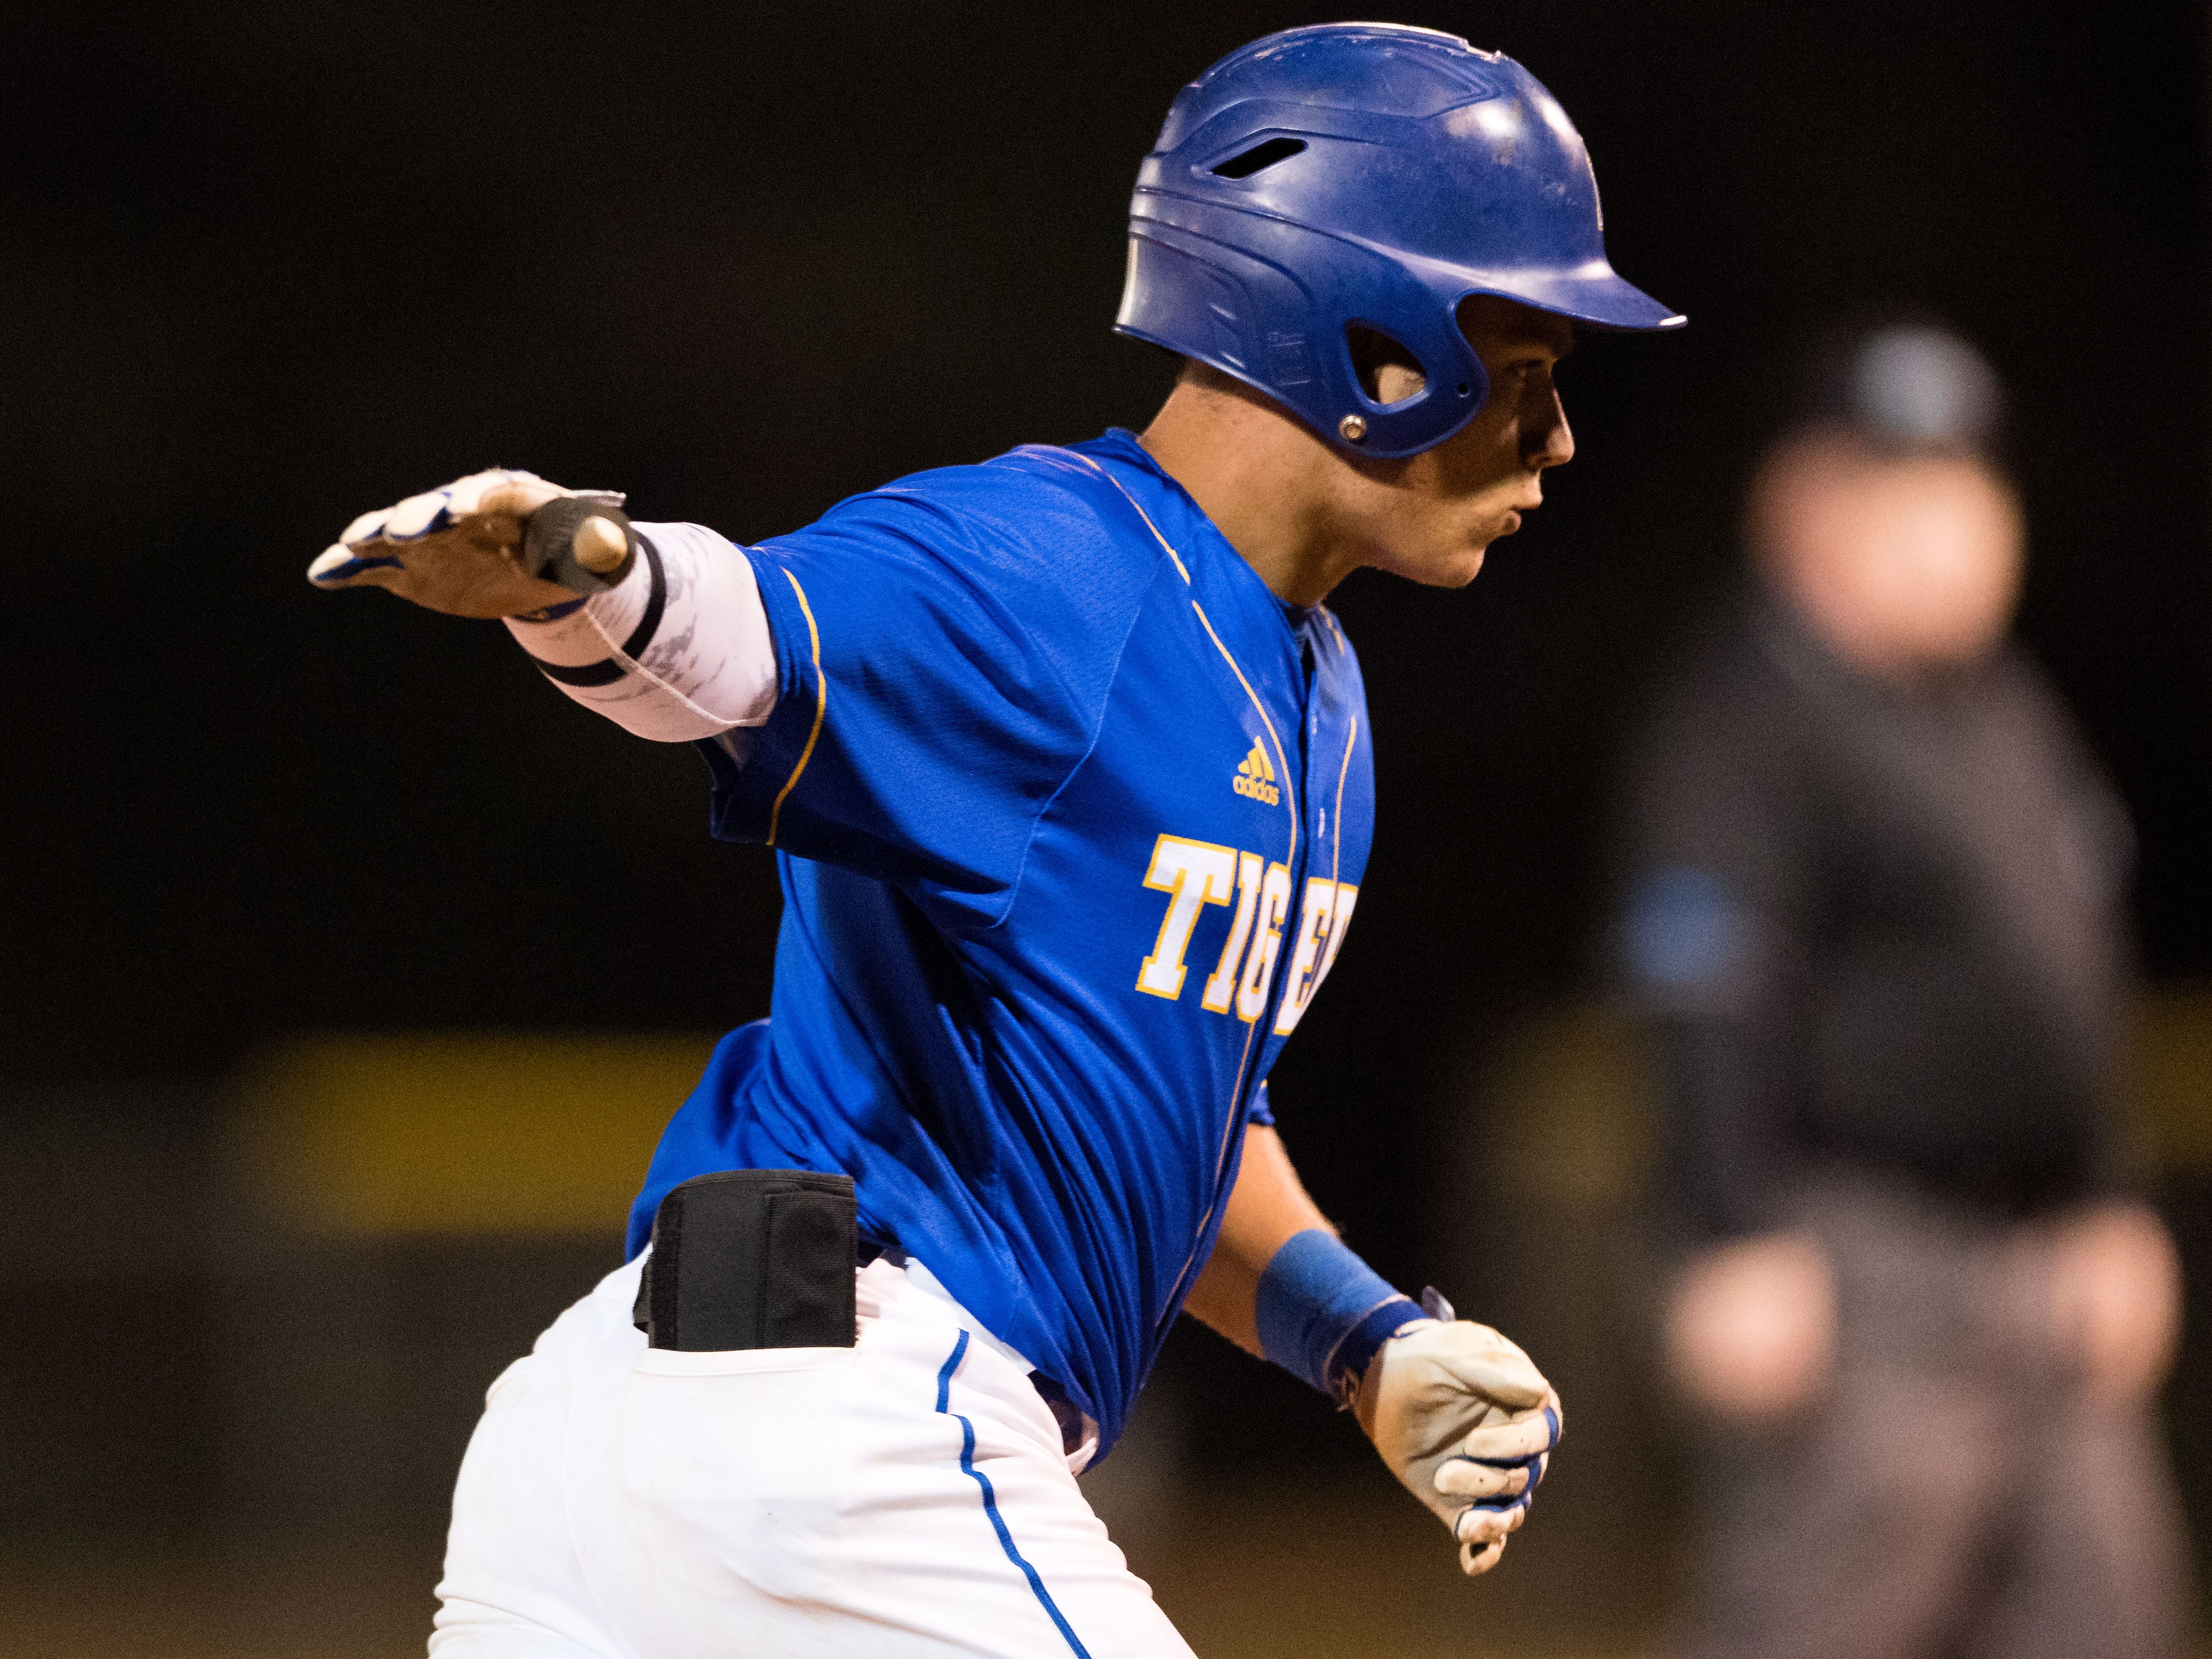 Martin County's Brannon Mondragon rounds the bases after hitting a solo homer in the fifth inning against South Fork during the 2019 Robbie Souza Classic high school baseball game Friday, March 22, 2019, at South Fork High School in Tropical Farms. Martin County won, 5-1.